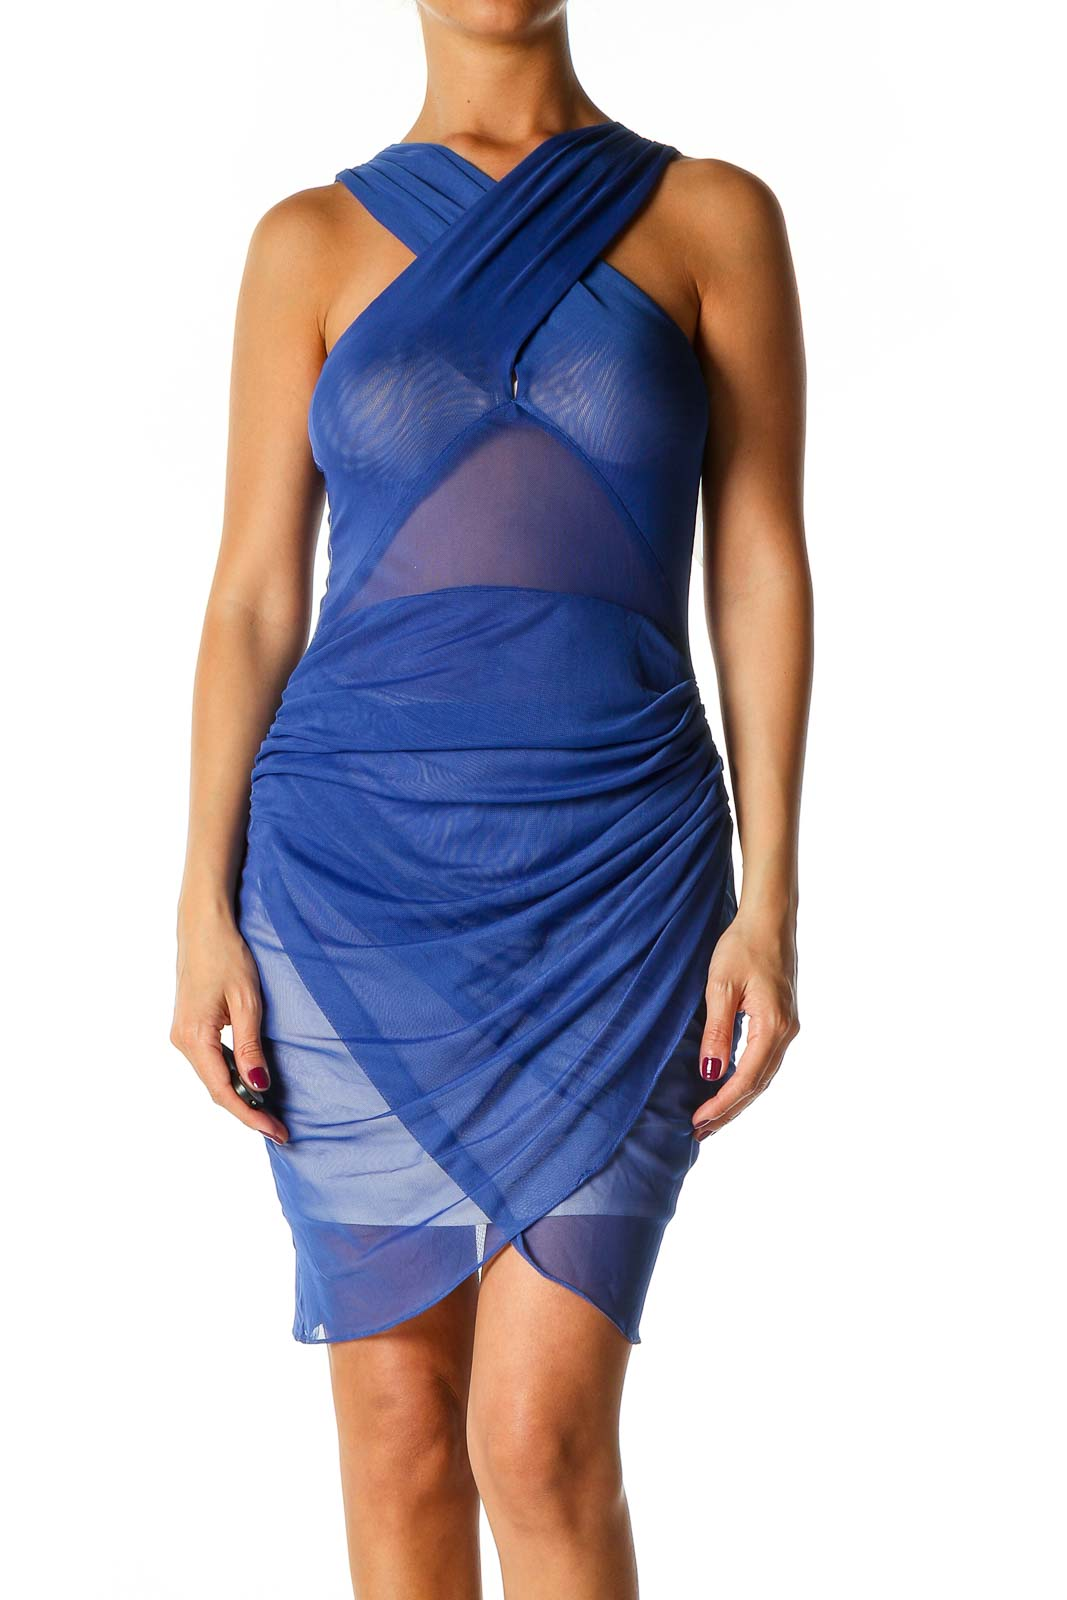 Blue Solid Chic Sheath Dress Front